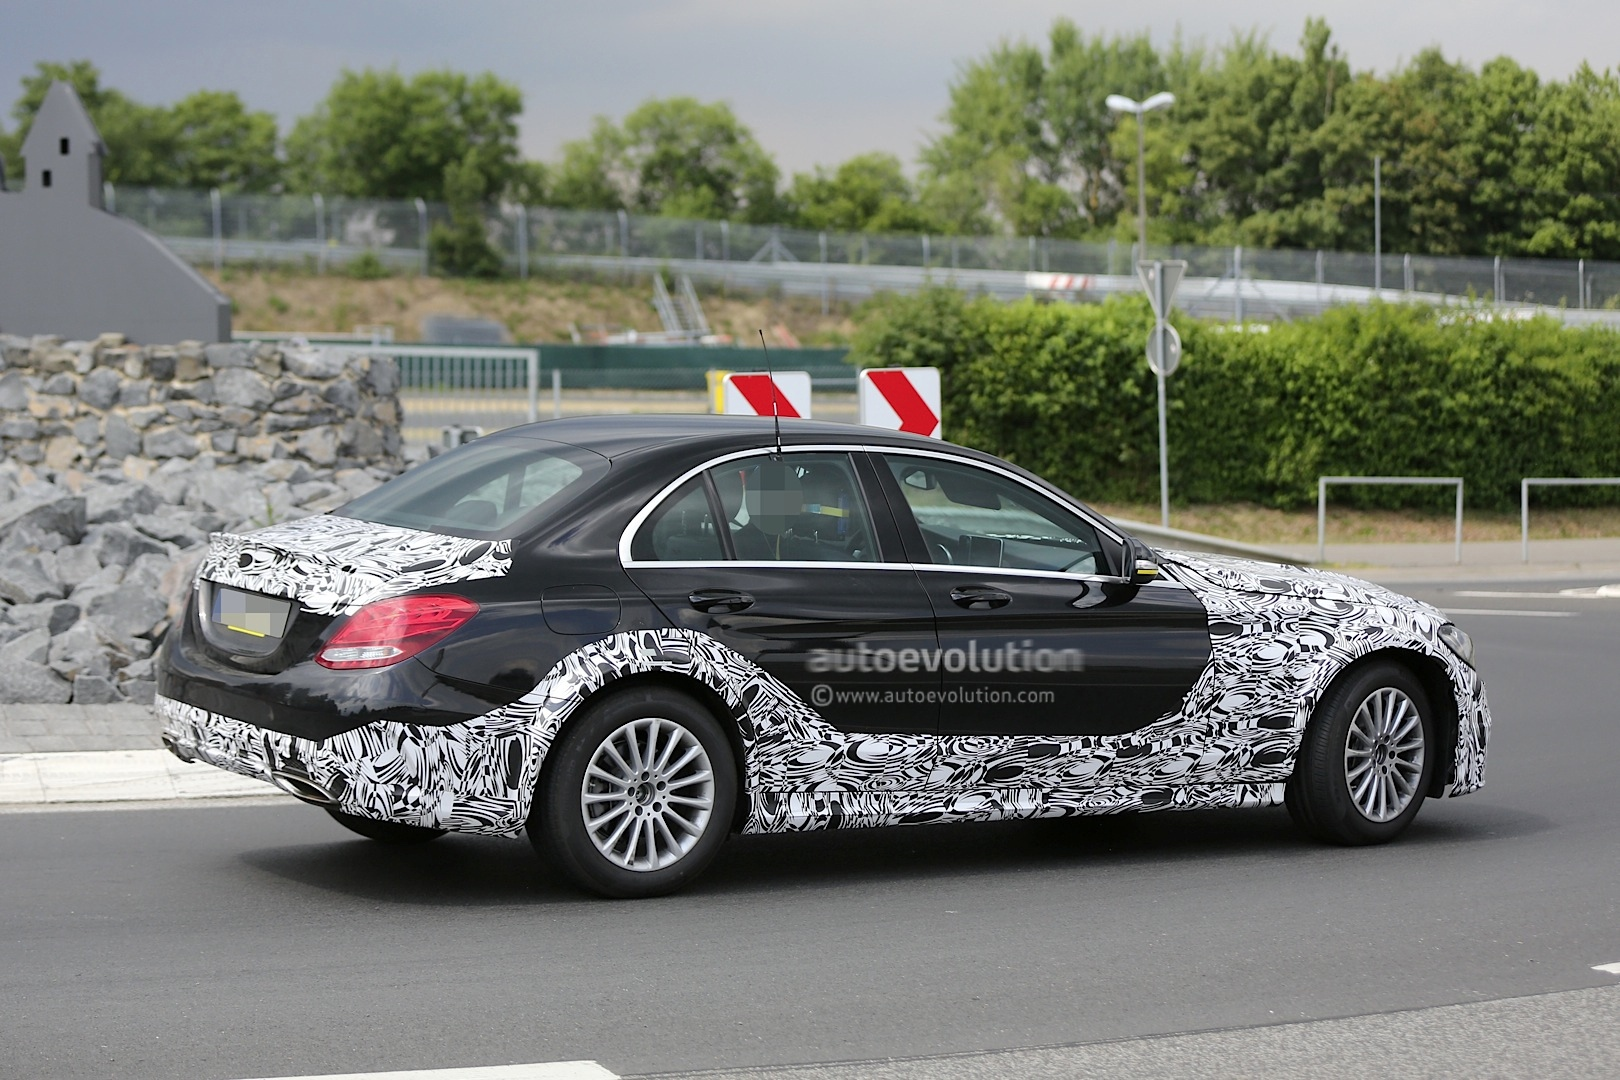 2016 - [Mercedes] Classe E [W213] - Page 2 E-class-w213-mule-based-on-current-c-class-spied-photo-gallery_5